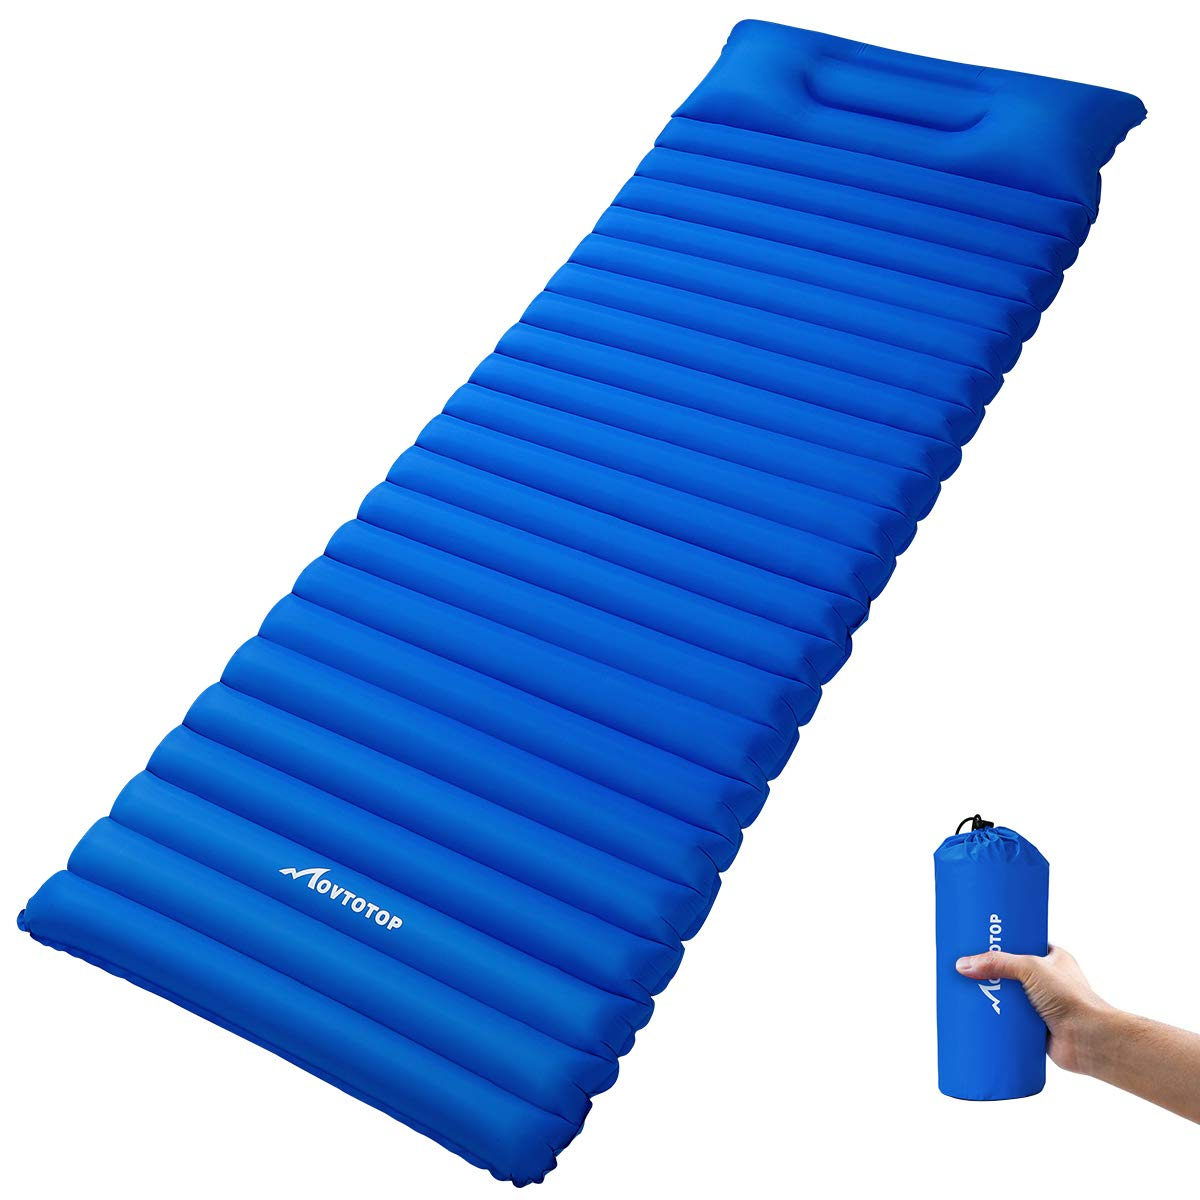 MOVTOTOP Camping Sleeping Pad【Newest 2019】, Ultralight Sleeping Mat with Attached Pillow, Backpacking Inflating Sleeping Pad (78.7 x 23.6 x 3.6in), Perfect for Hiking, Traveling and Backpacking(Blue) by MOVTOTOP